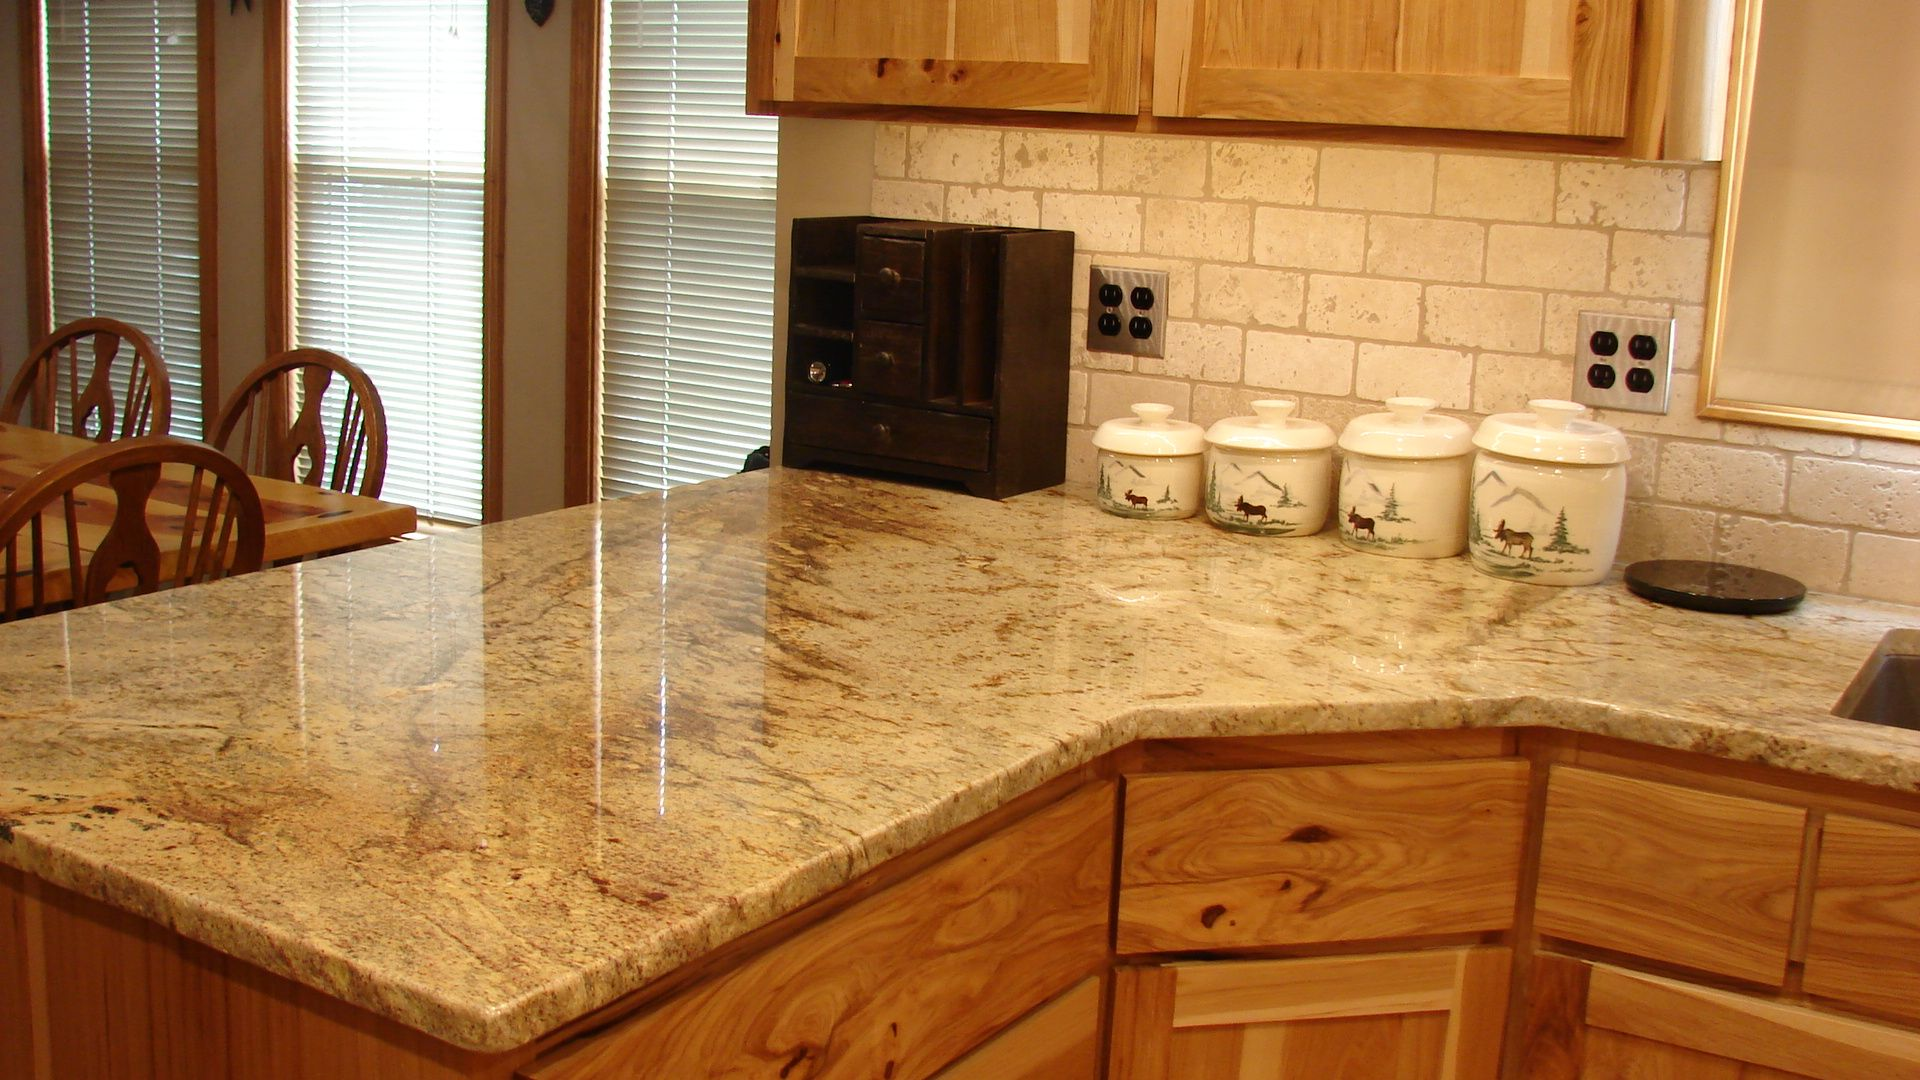 Granite Kitchen Counter Top Done In 3cm Typhoon Bordeaux With Chiseled Edge.  Back Splash Done